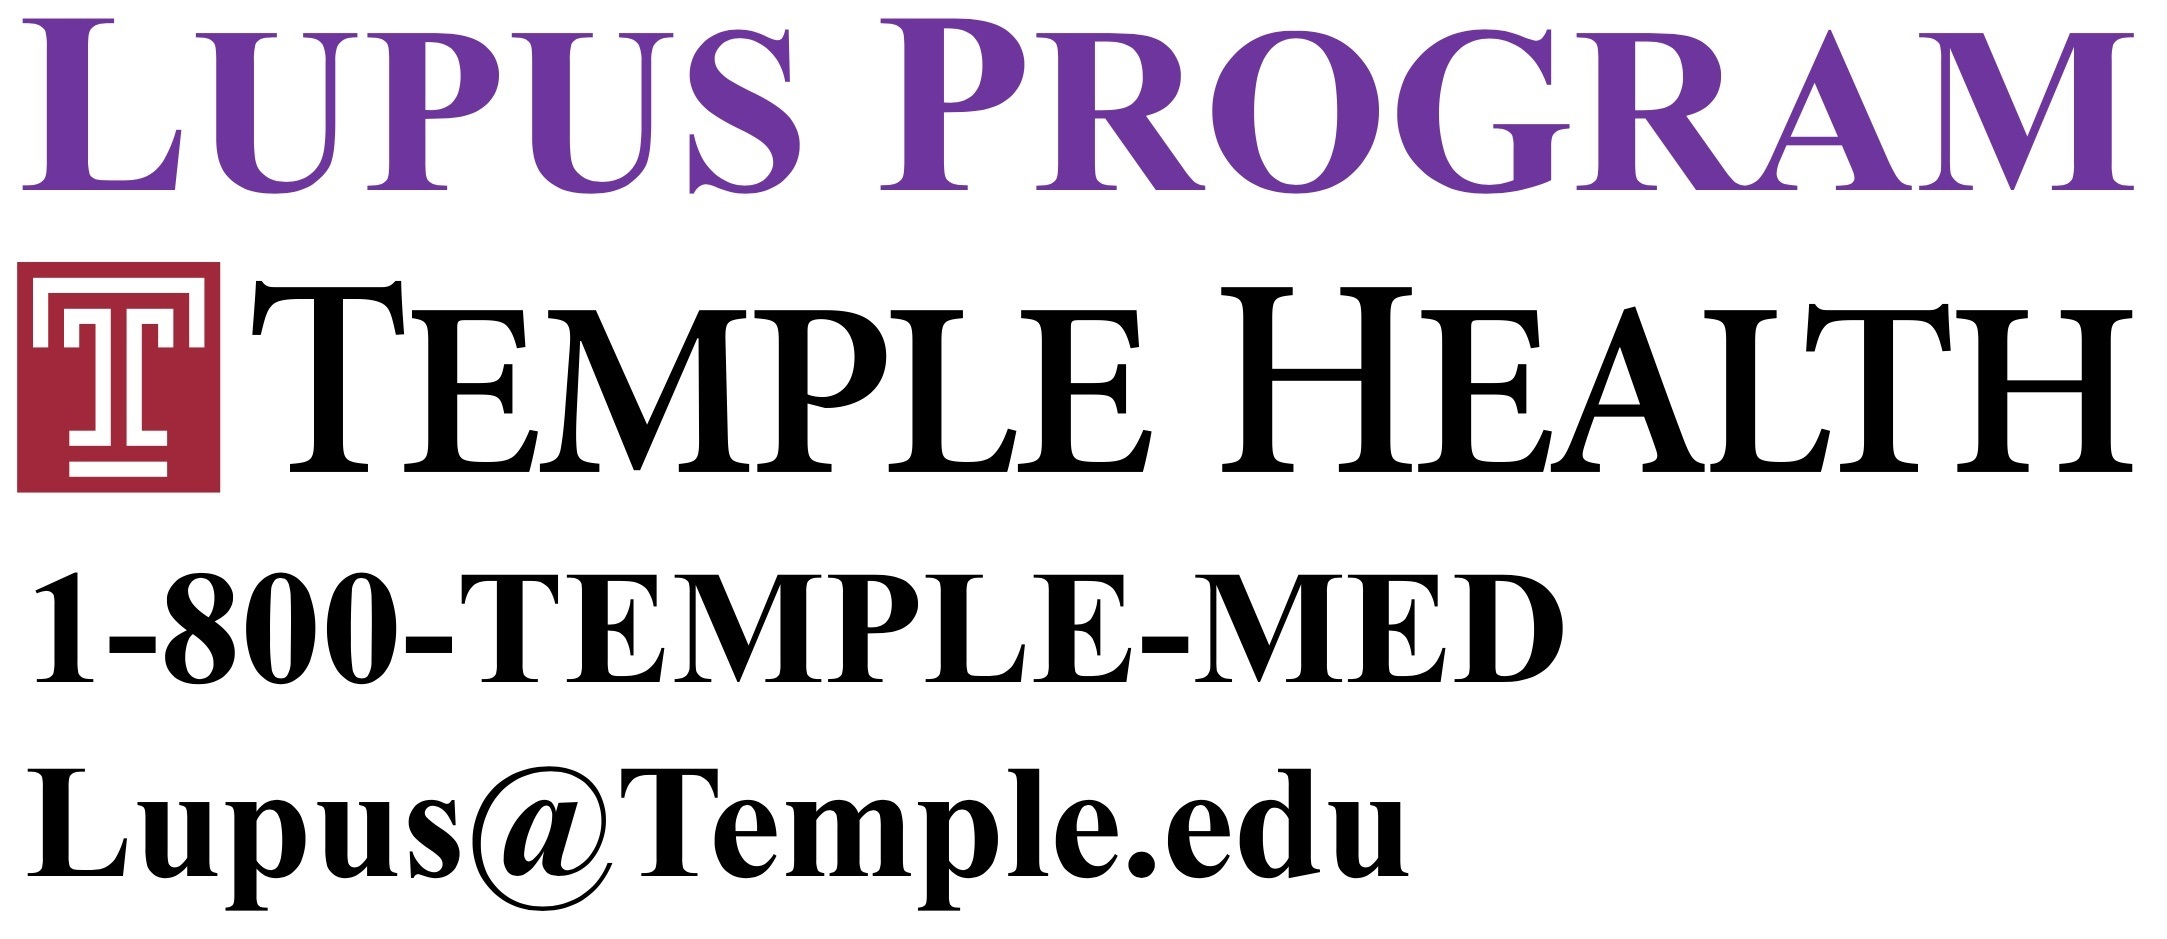 Temple Lupus Program